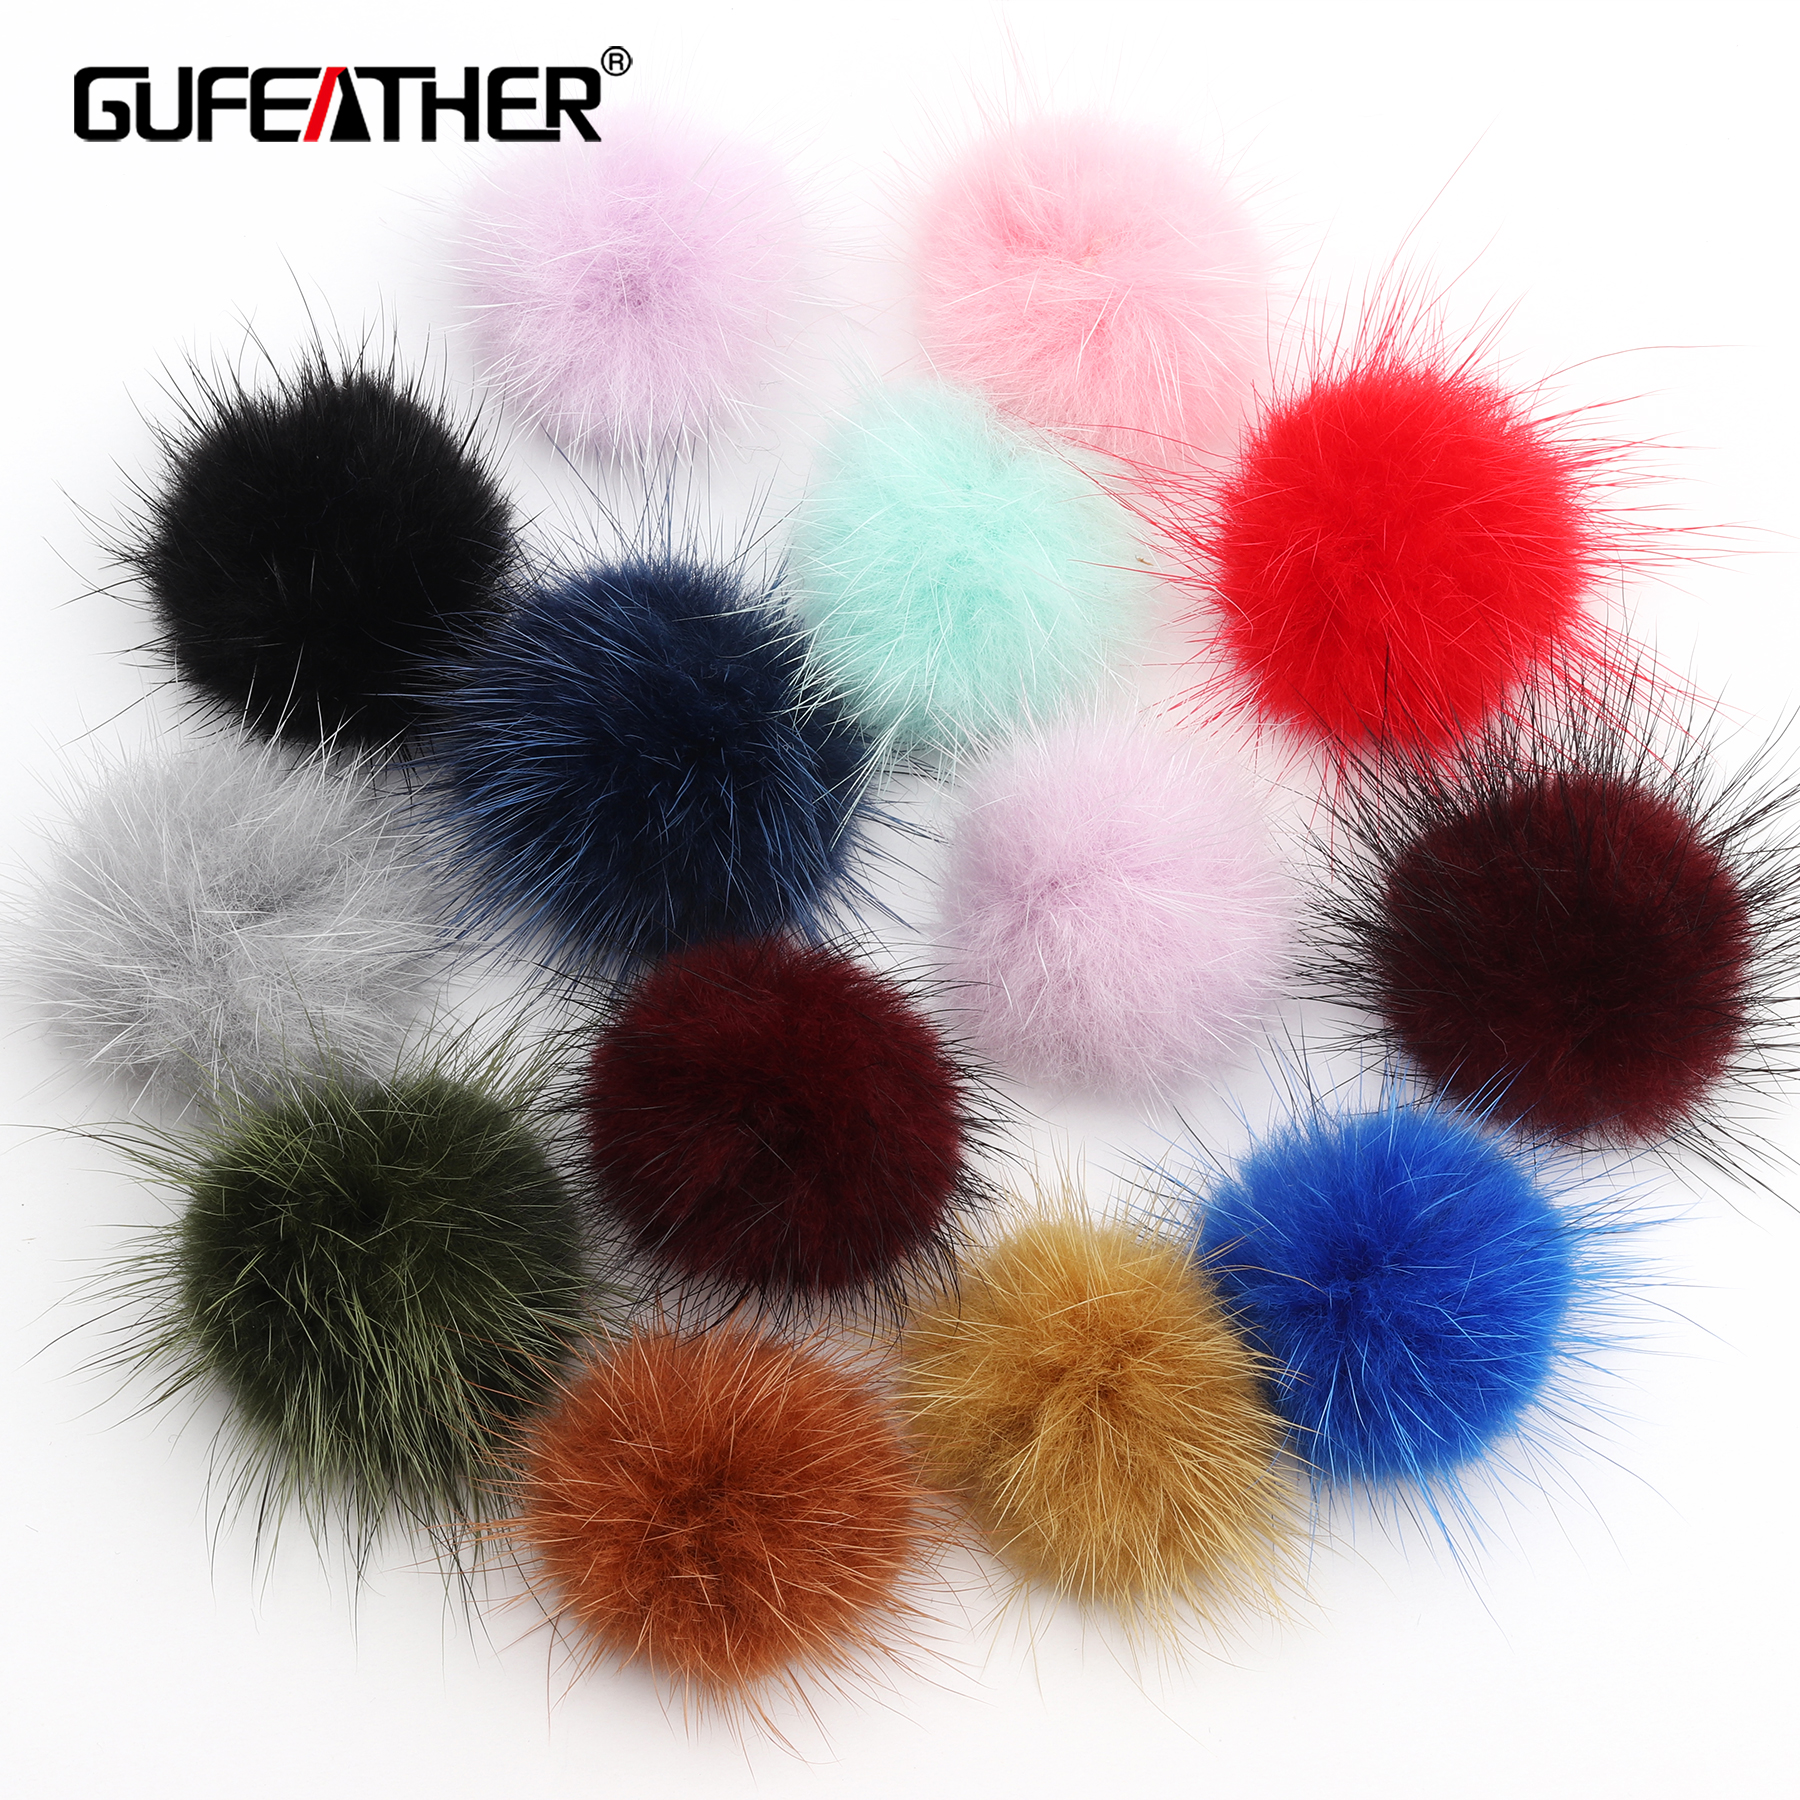 GUFEATHER L201,tassels,fur Tassel,hand Made,jewelry Findings Components,jewelry Making,diy Earring,jewelry Accessories,10pcs/lot